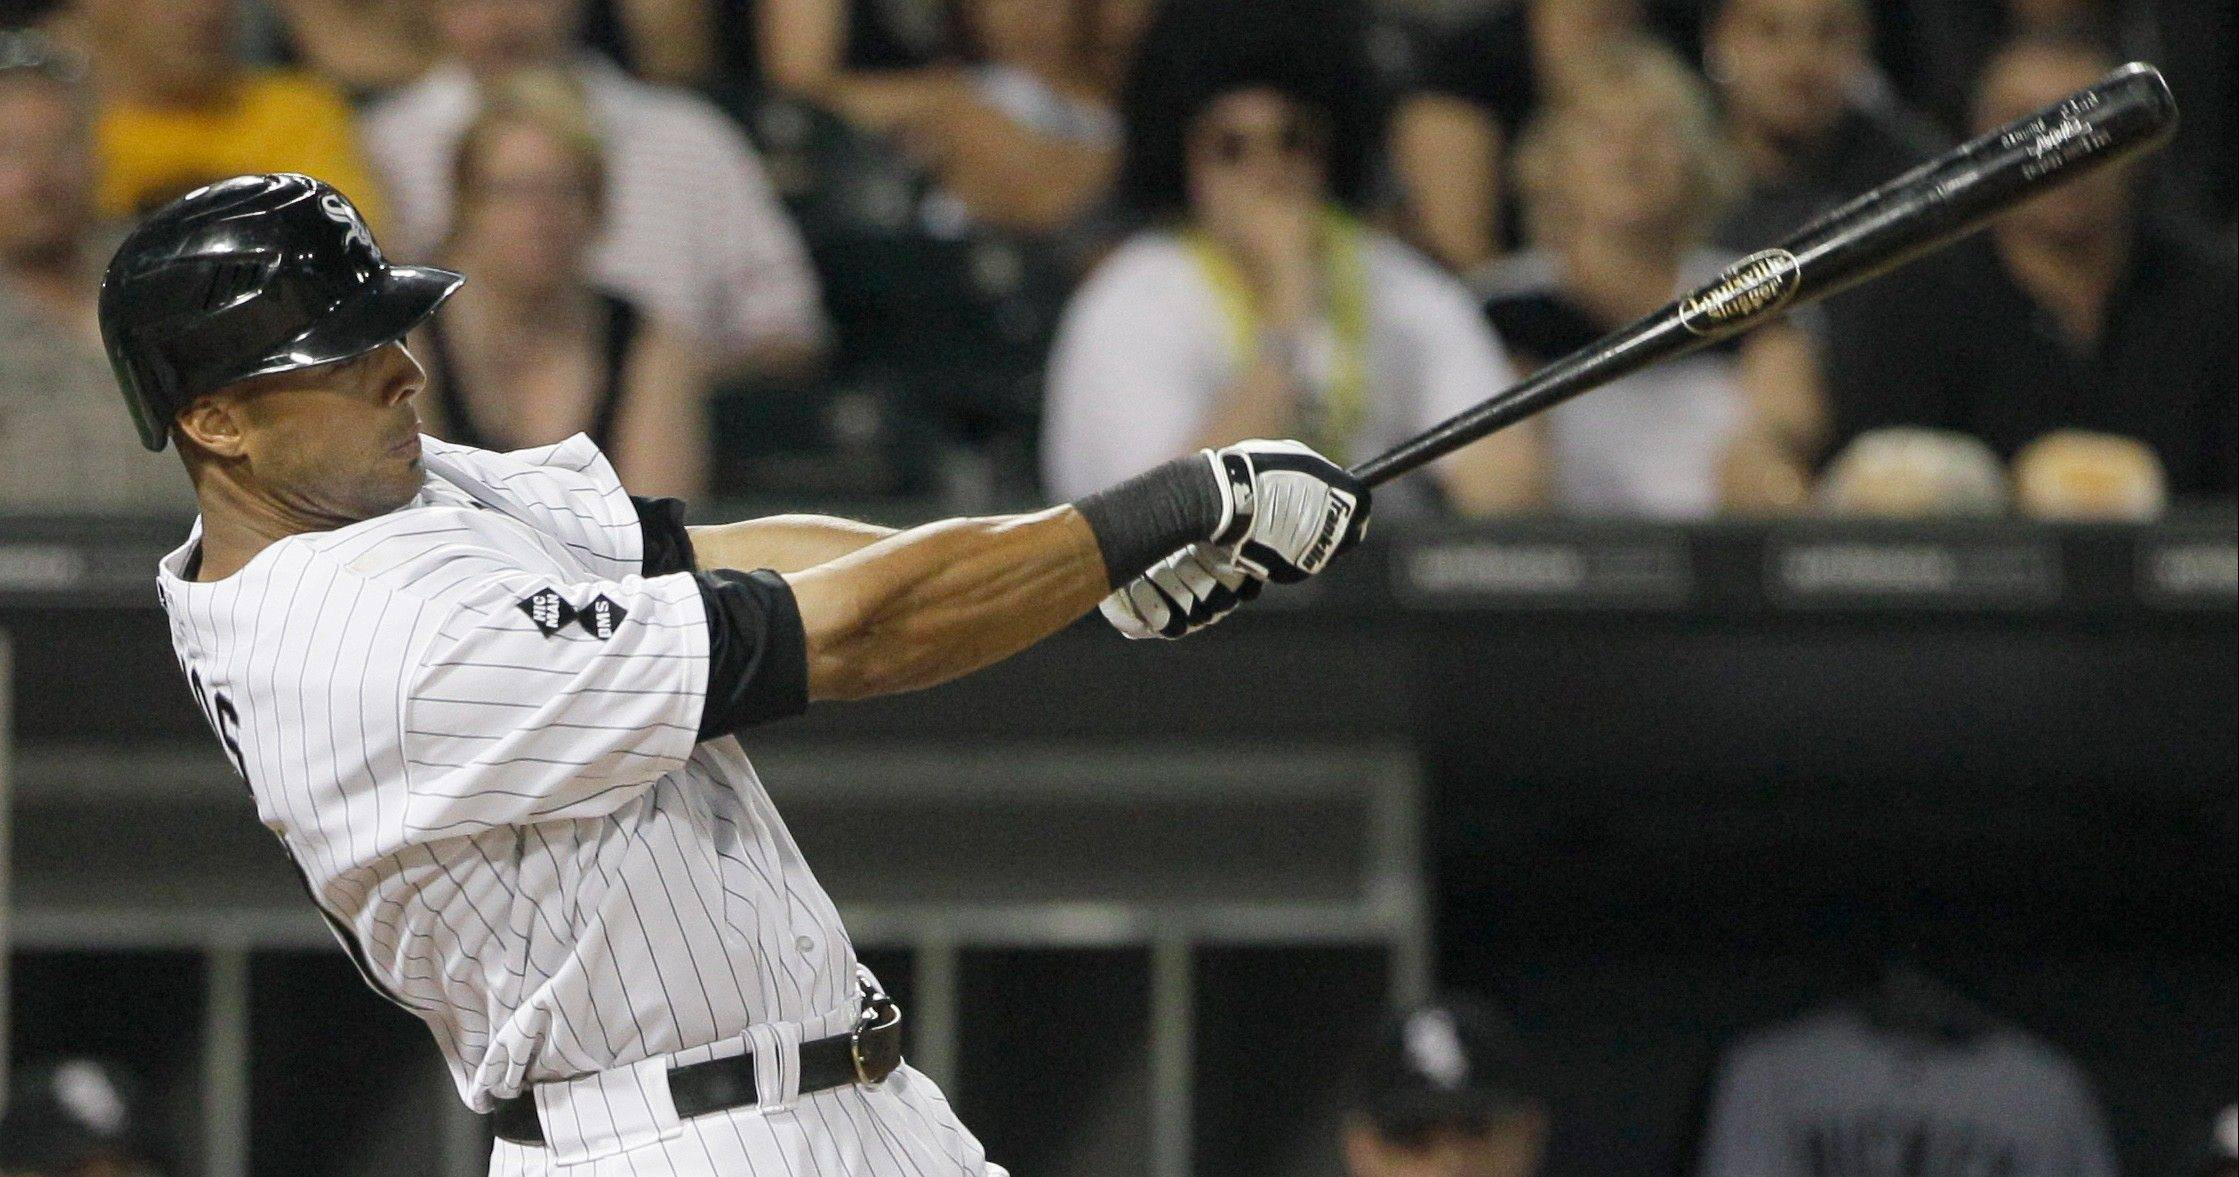 The swing of the White Sox' Alex Rios combines physics and geometry to create an elegant sight, according to Matt Spiegel.